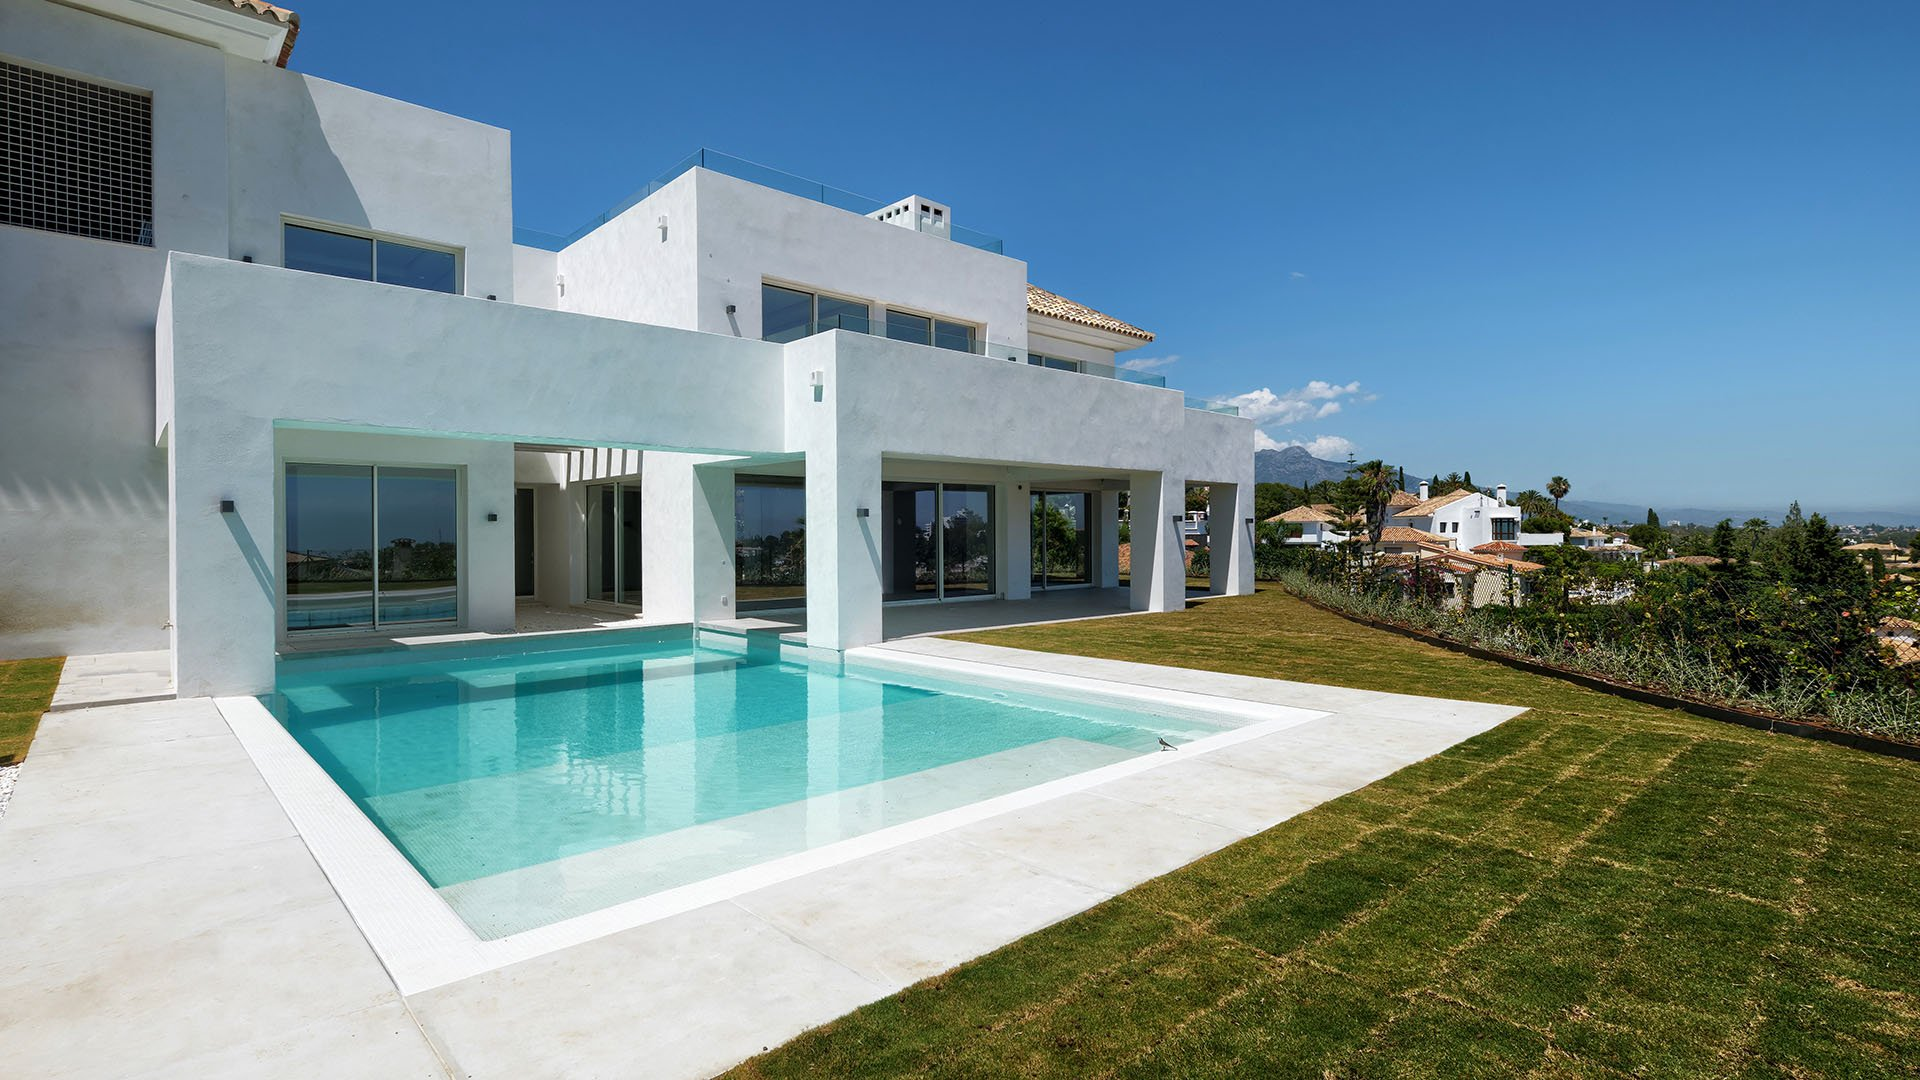 Villa El Paraiso Alto: Luxe villa met spectaculair zeezicht in El Paraíso Alto